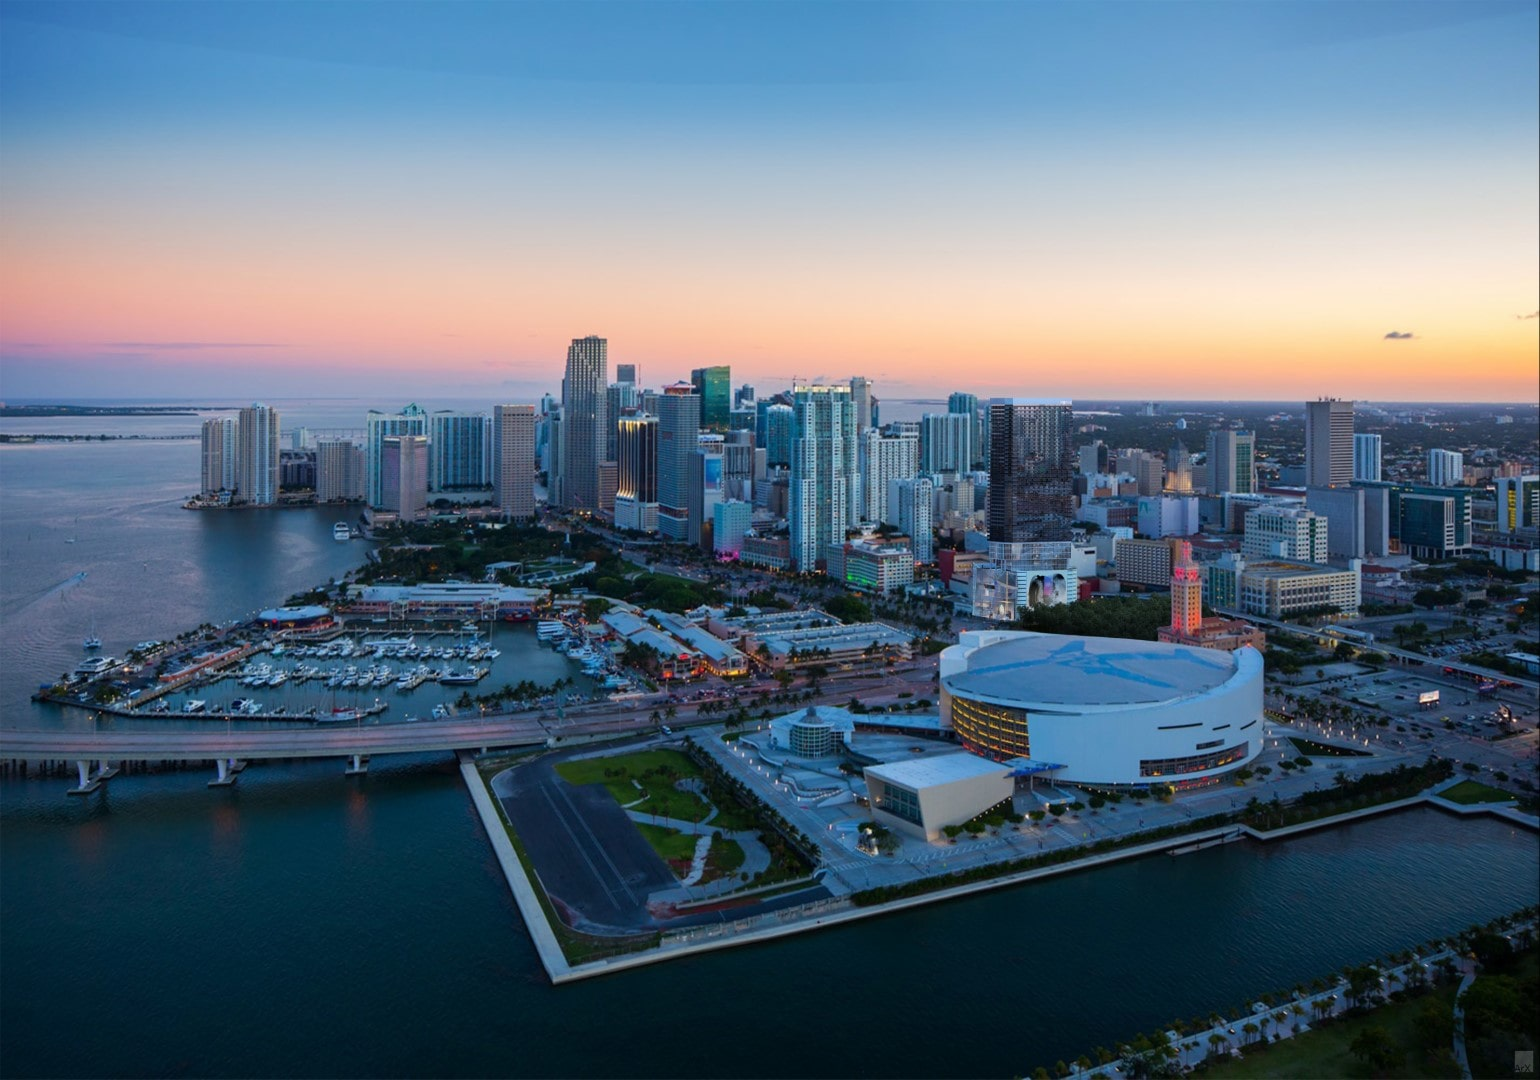 PMG Locks Down $161.5 Million Construction Loan For 400 Biscayne